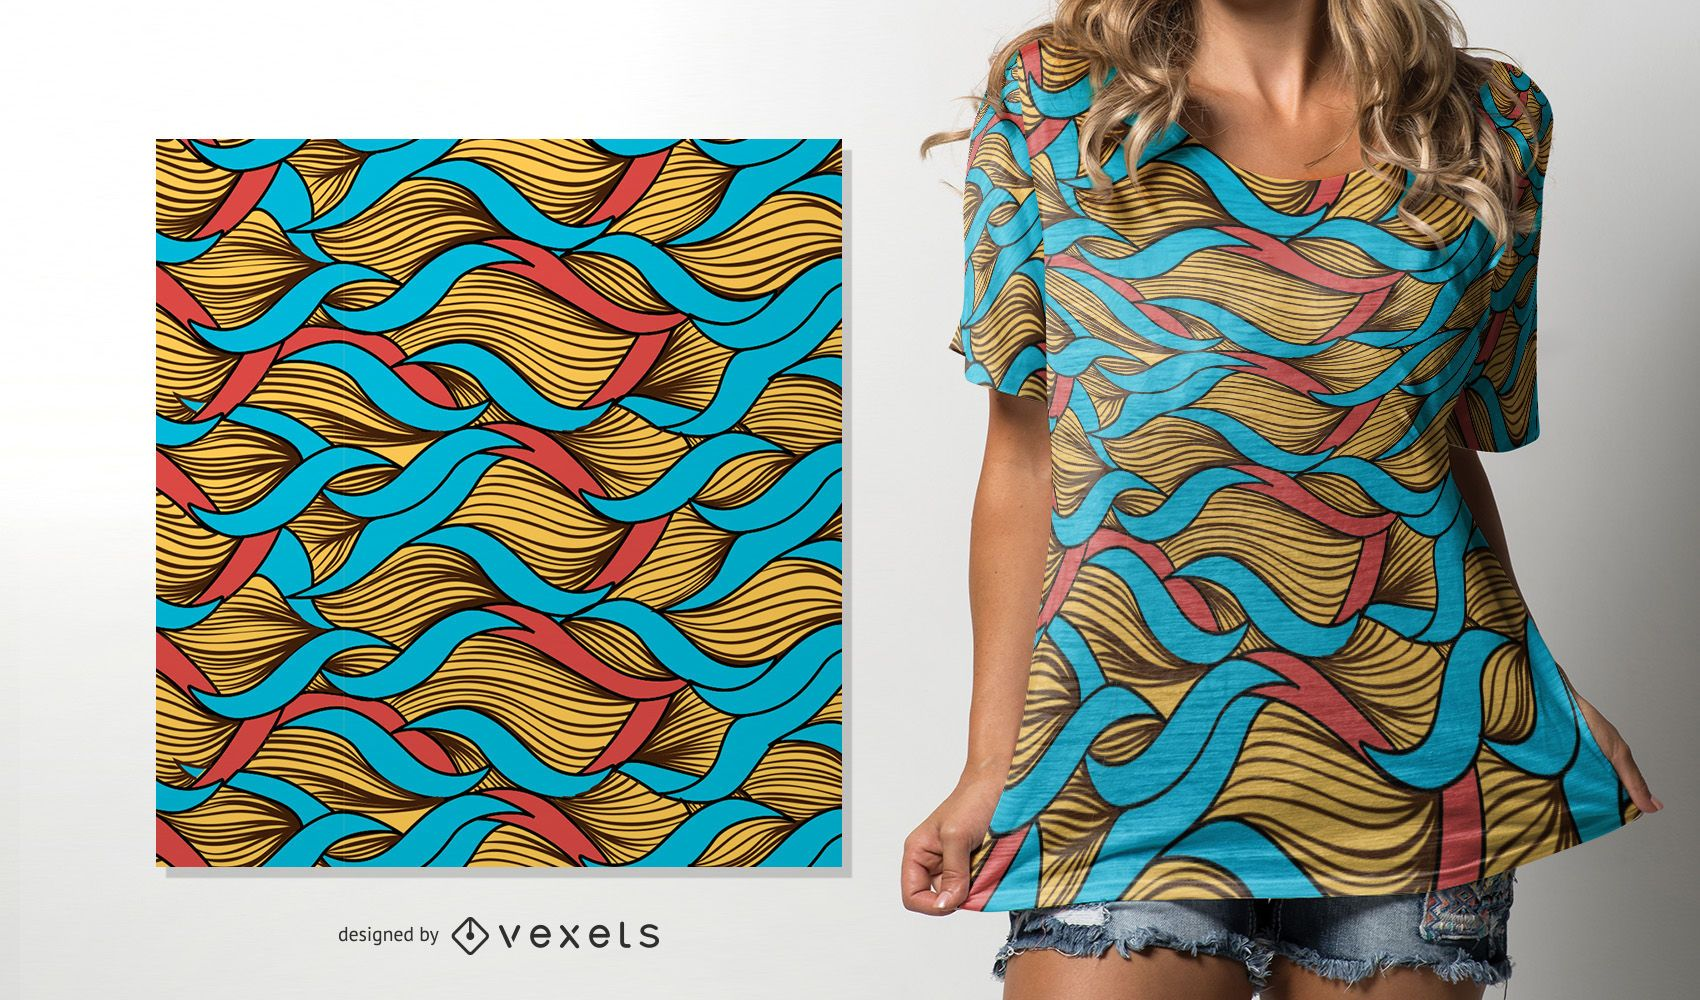 Twined threads African pattern